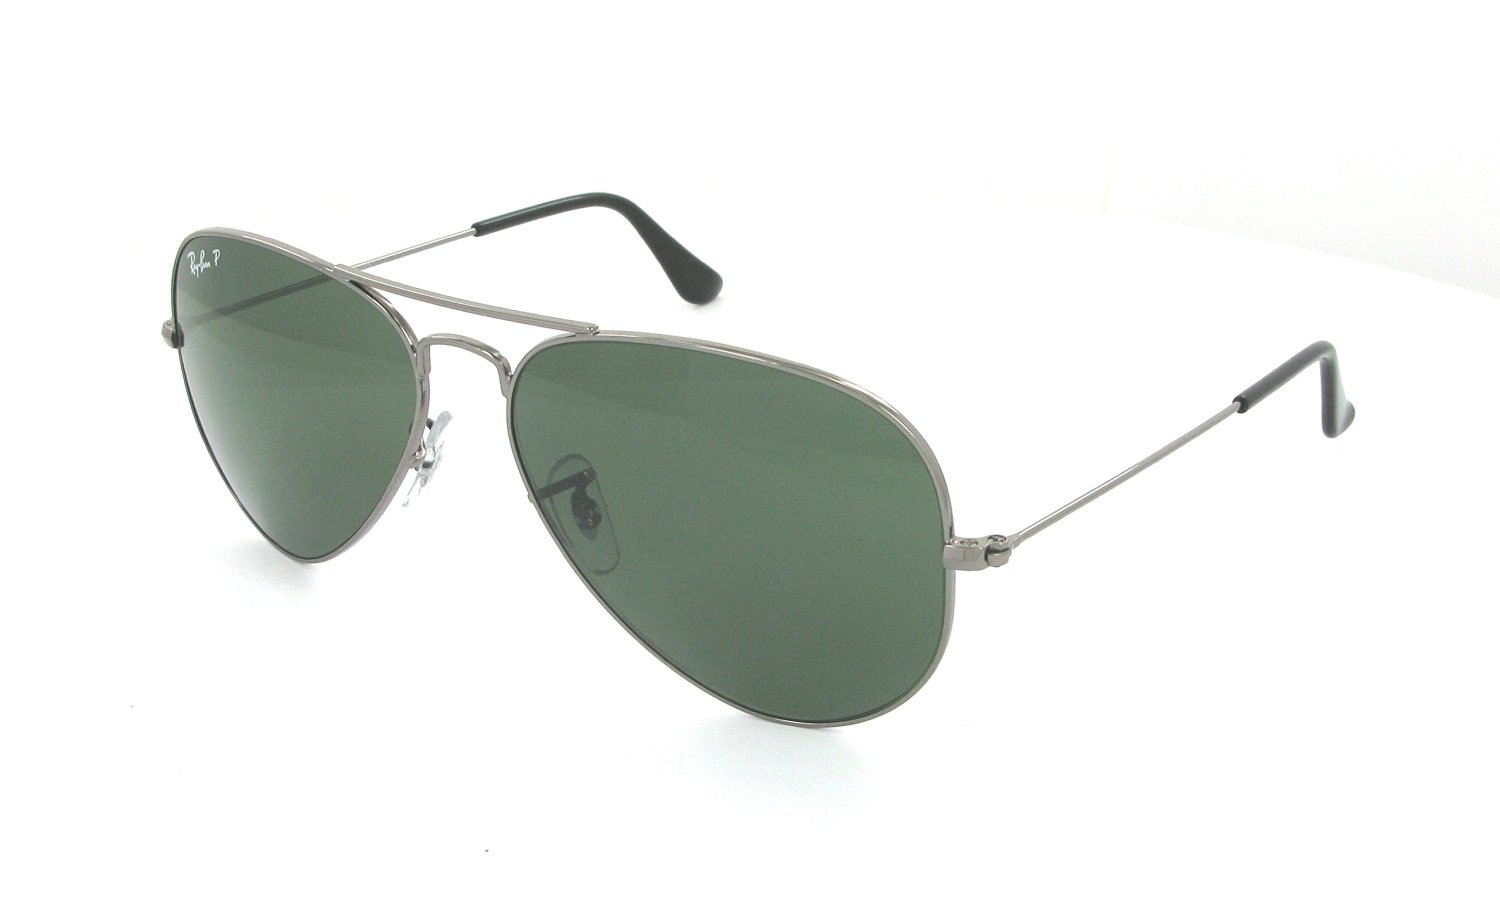 4926bcc2eb Get Quotations · Ray-Ban - RB3025 (Aviator Large Metal) - Gunmetal  Frame-Crystal Green